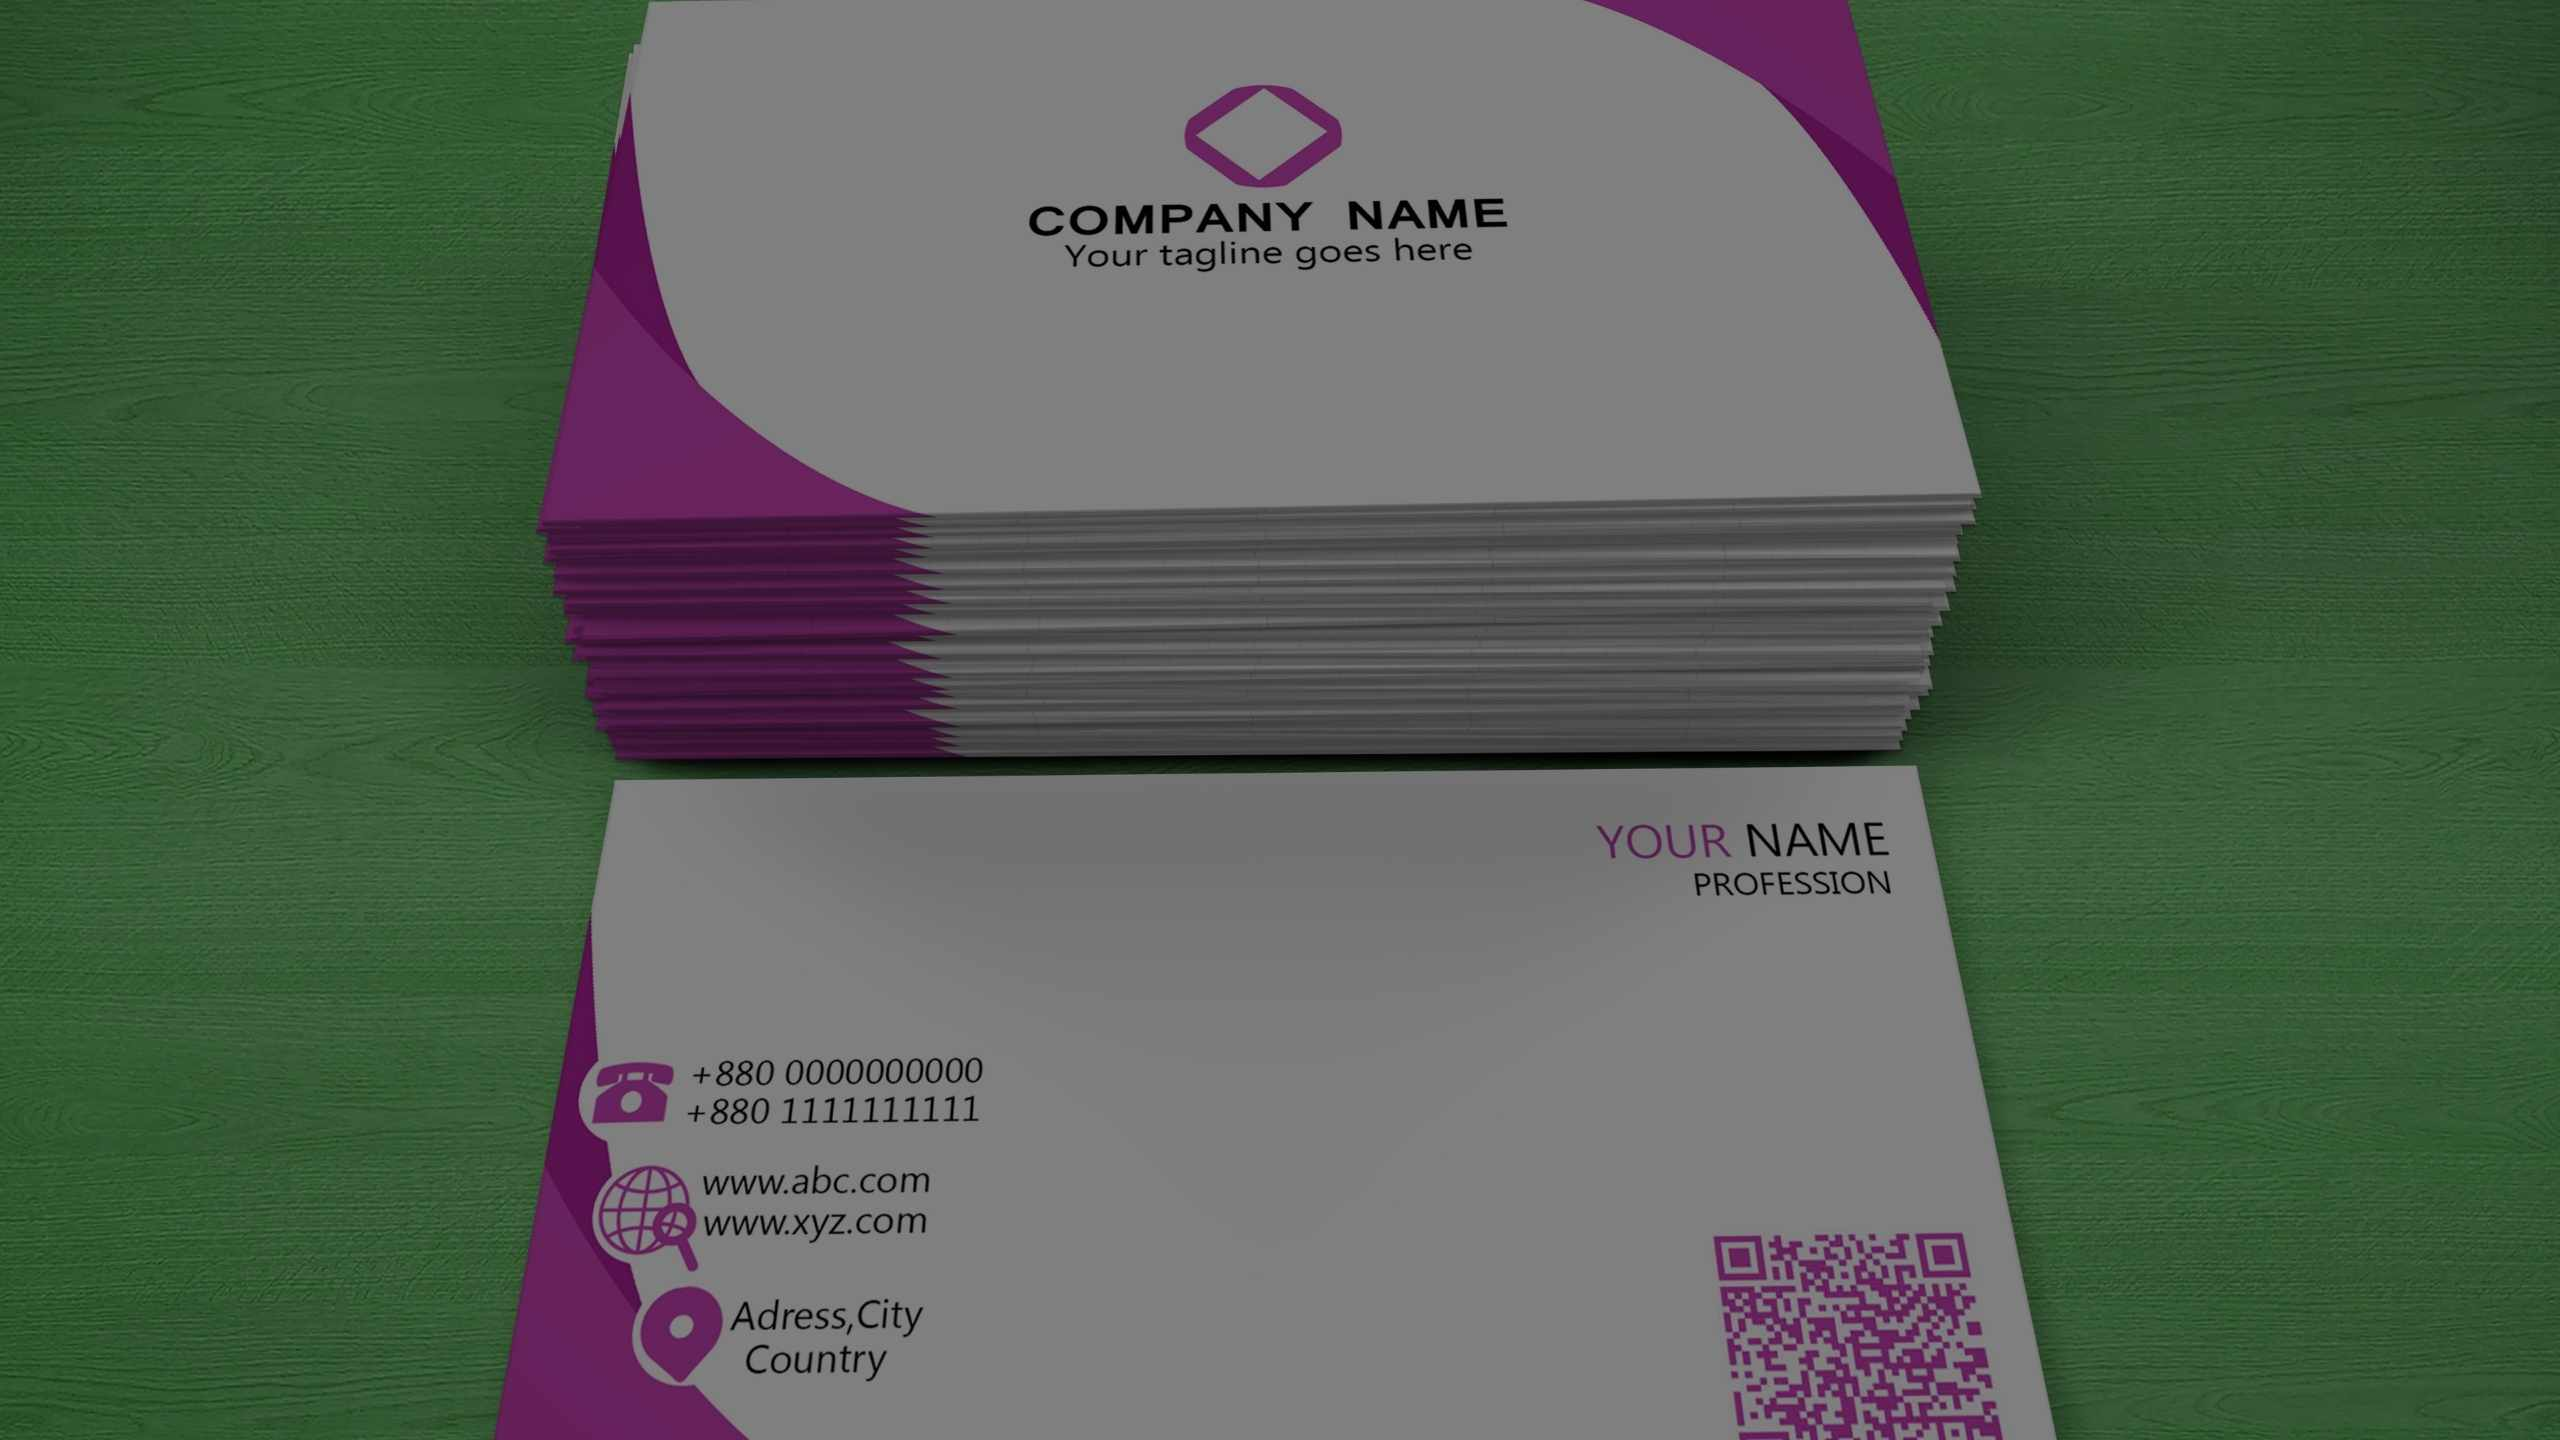 100 Business Cards For $19.09